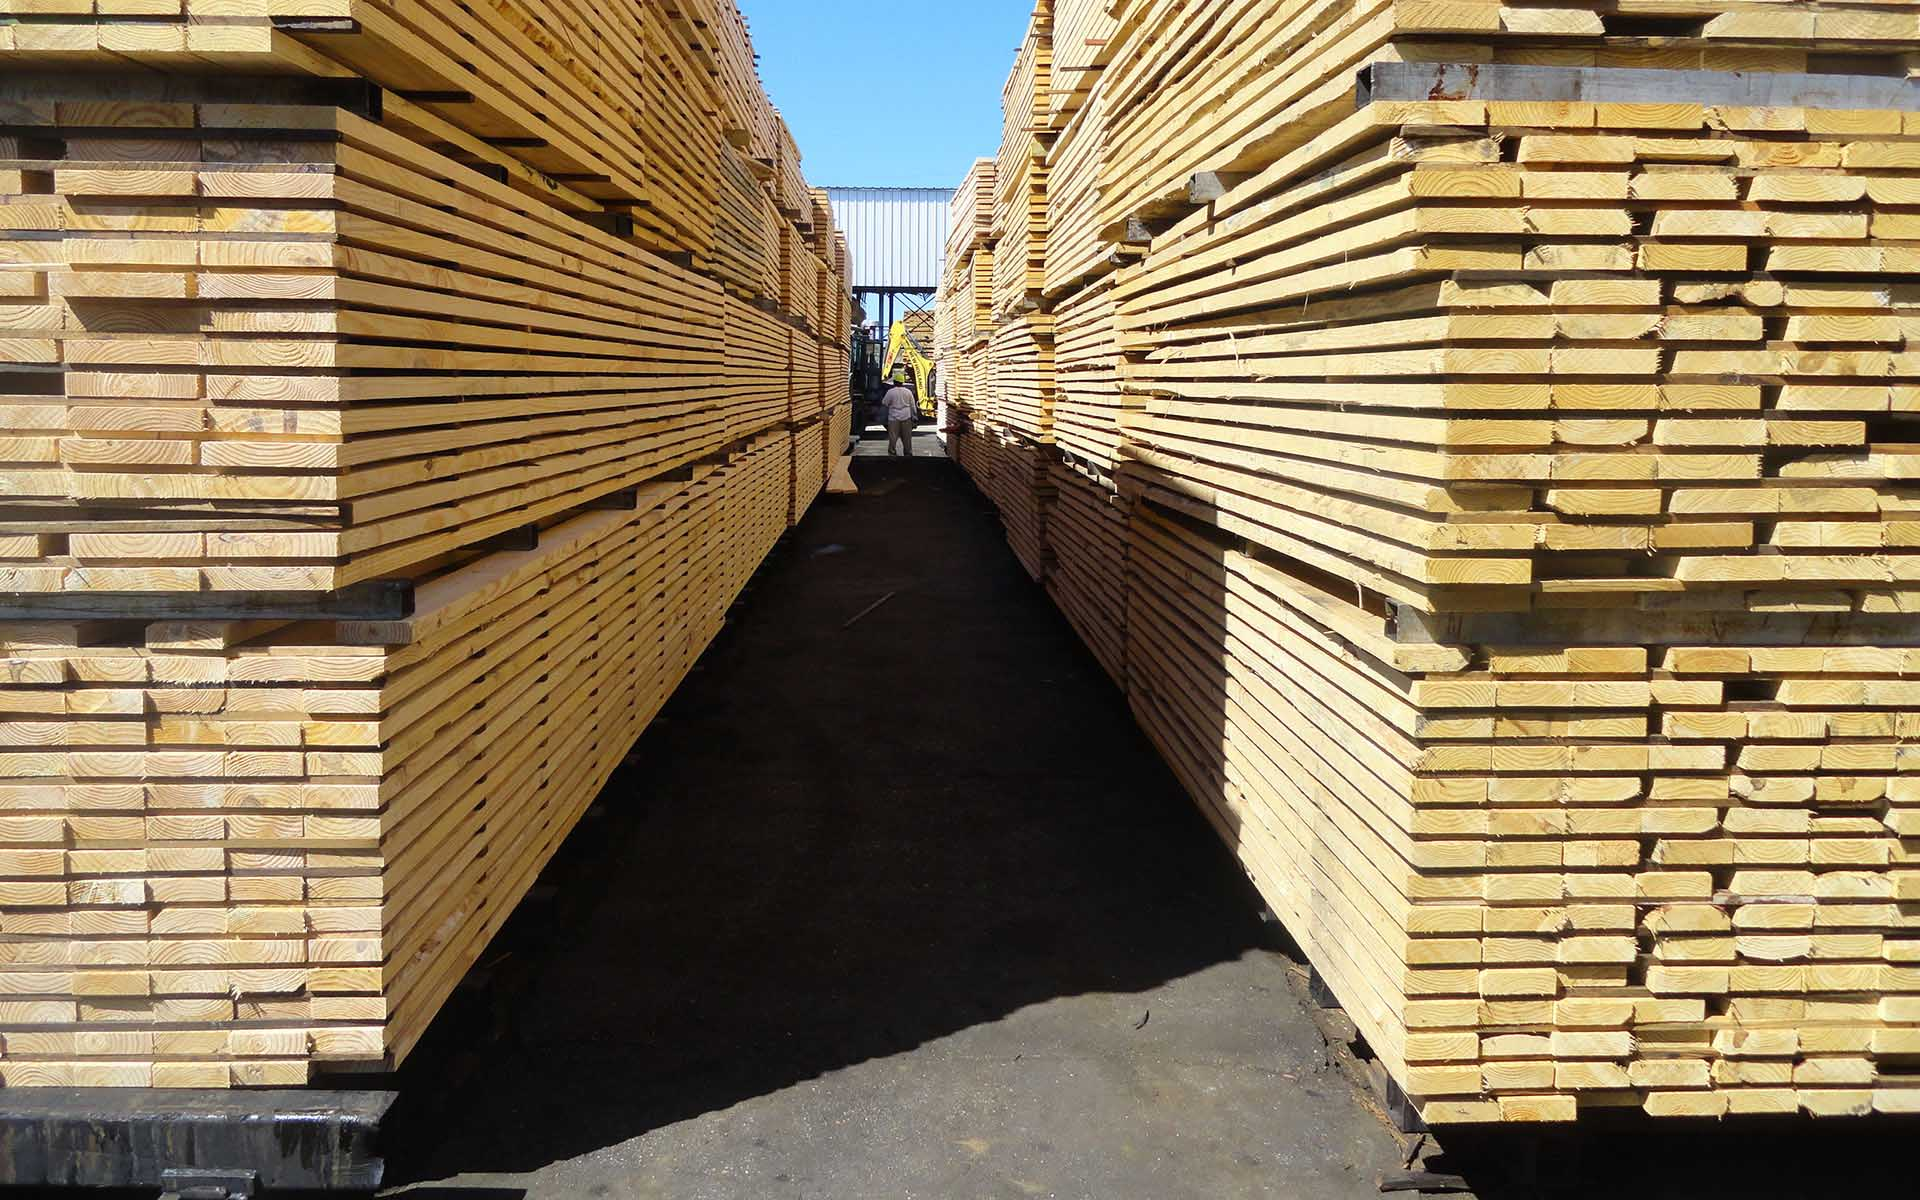 Naturally_Durable_Hardwood_Kiln_Sticks_yarding lumber 008.JPG